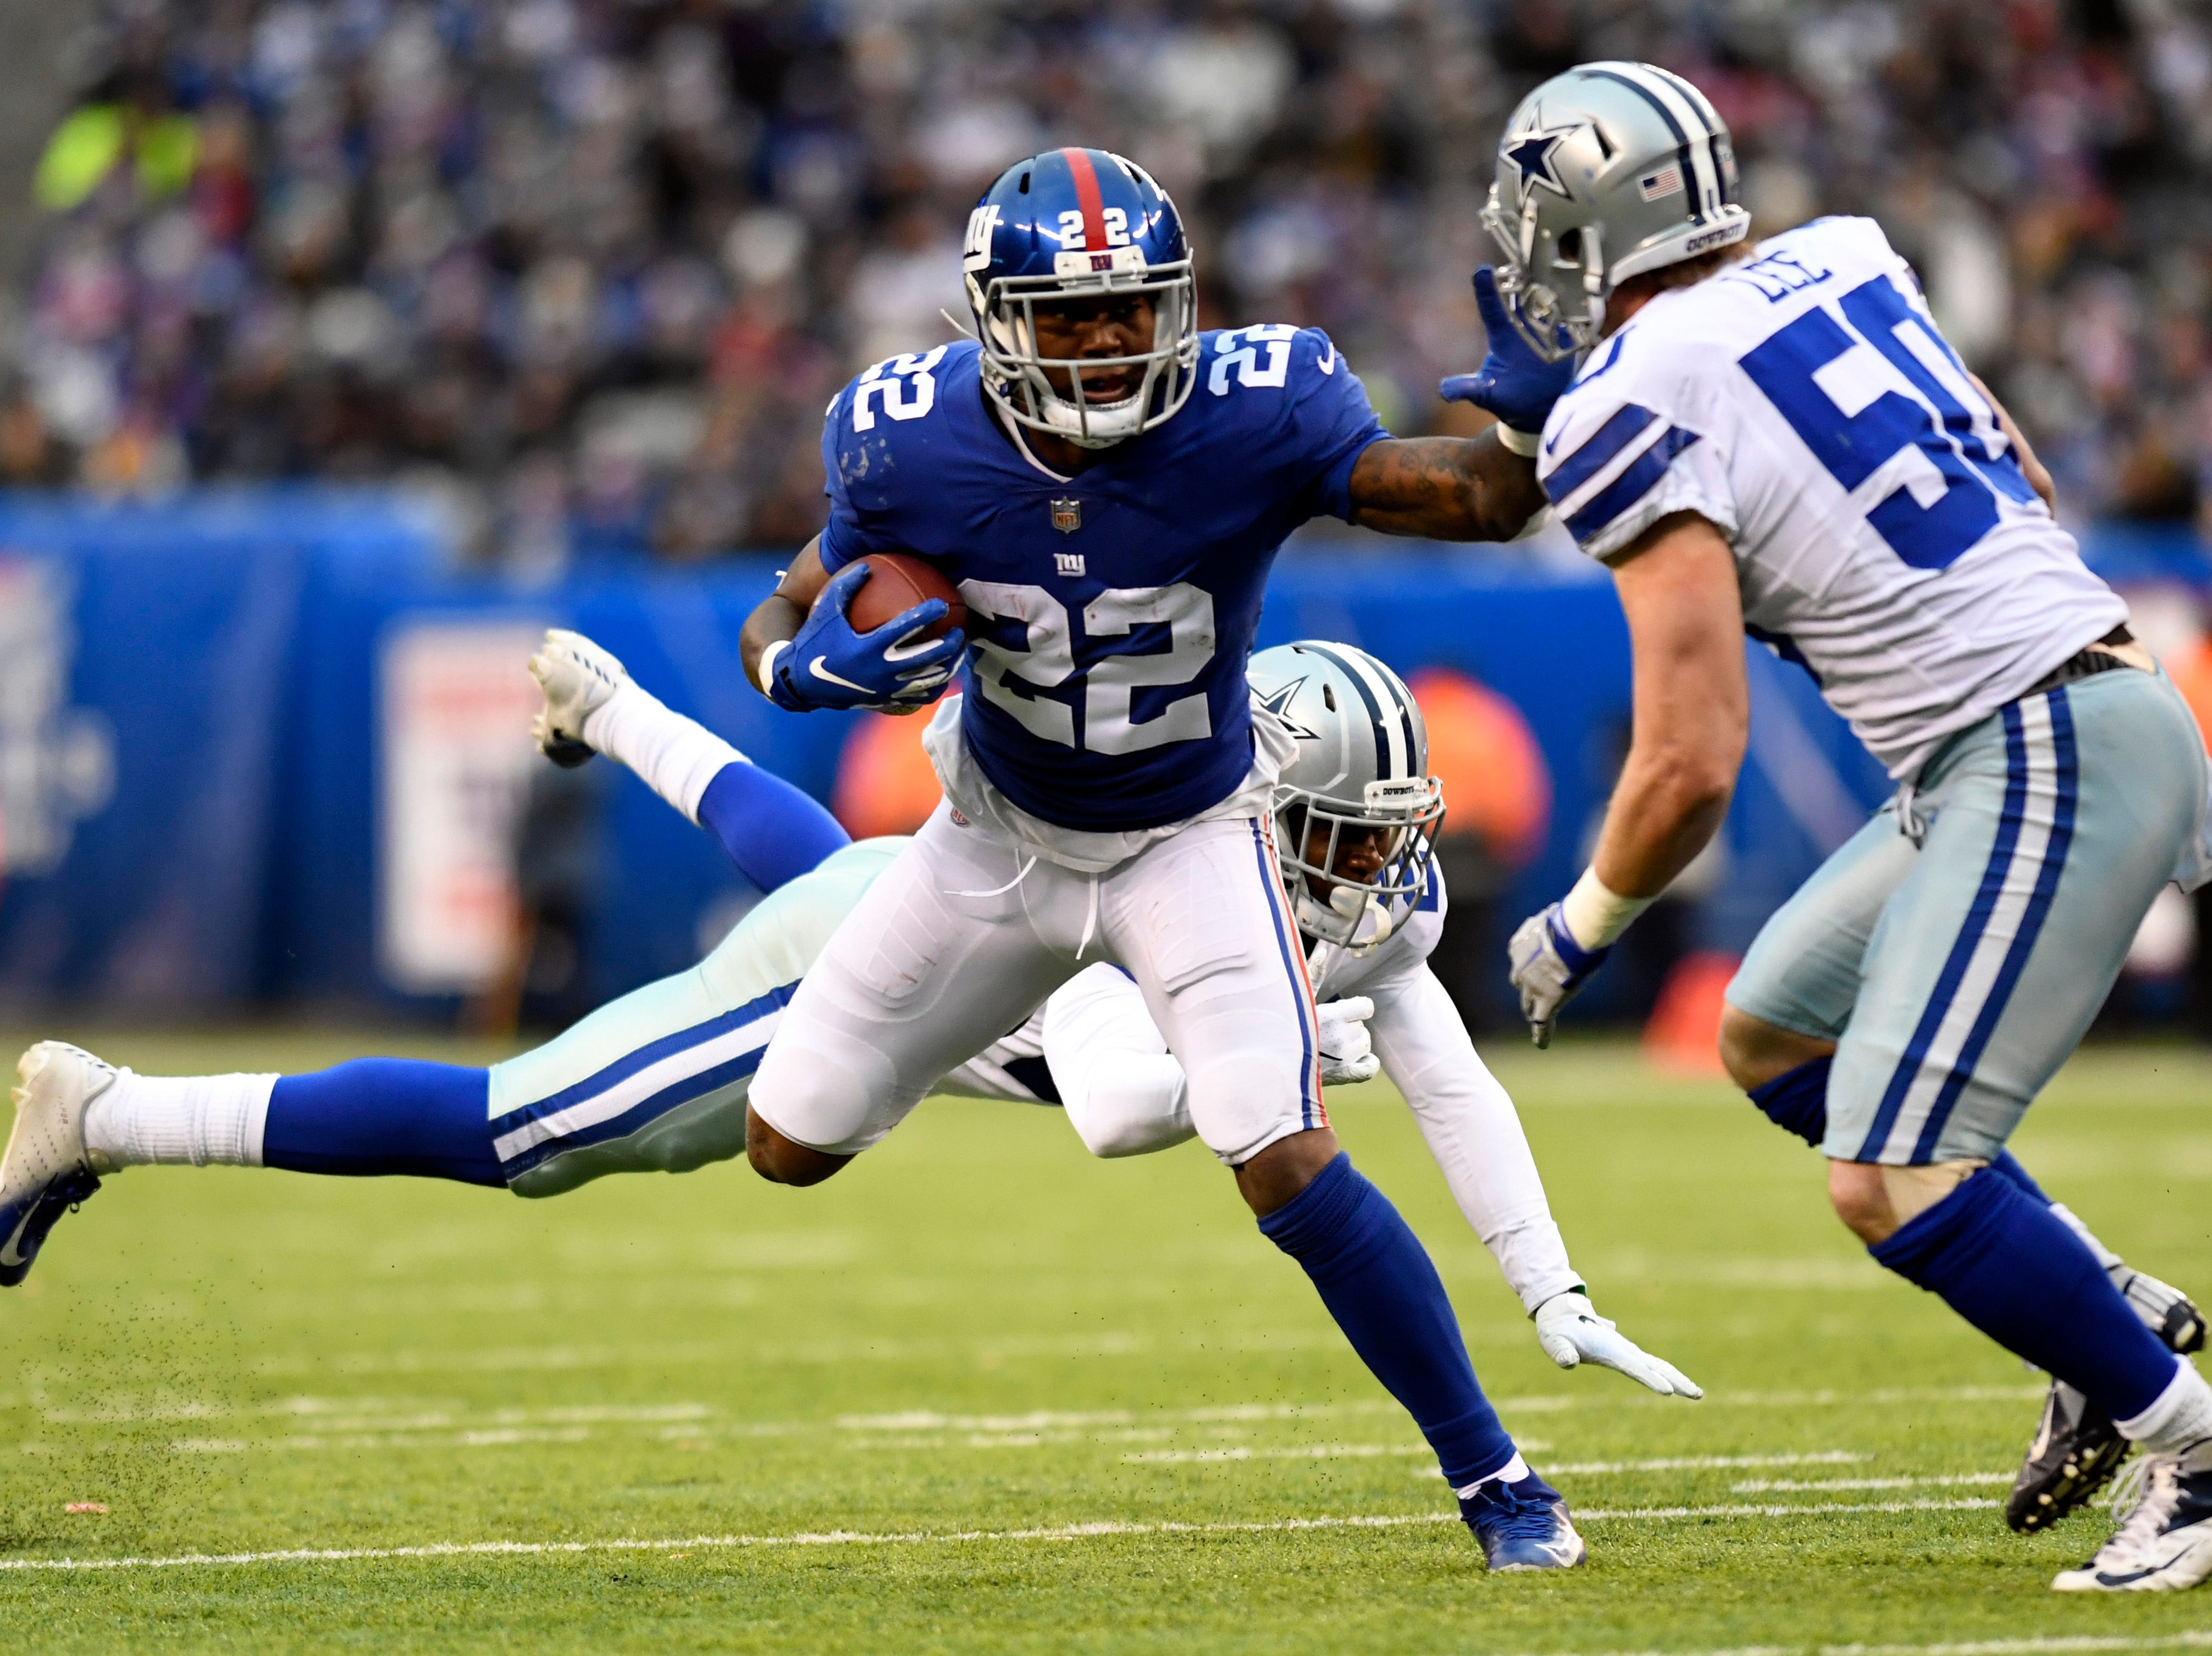 New York Giants running back Wayne Gallman (22) rushes against the Cowboys in the second half. The New York Giants lose to the Dallas Cowboys 36-35 on Sunday, Dec. 30, 2018, in East Rutherford.